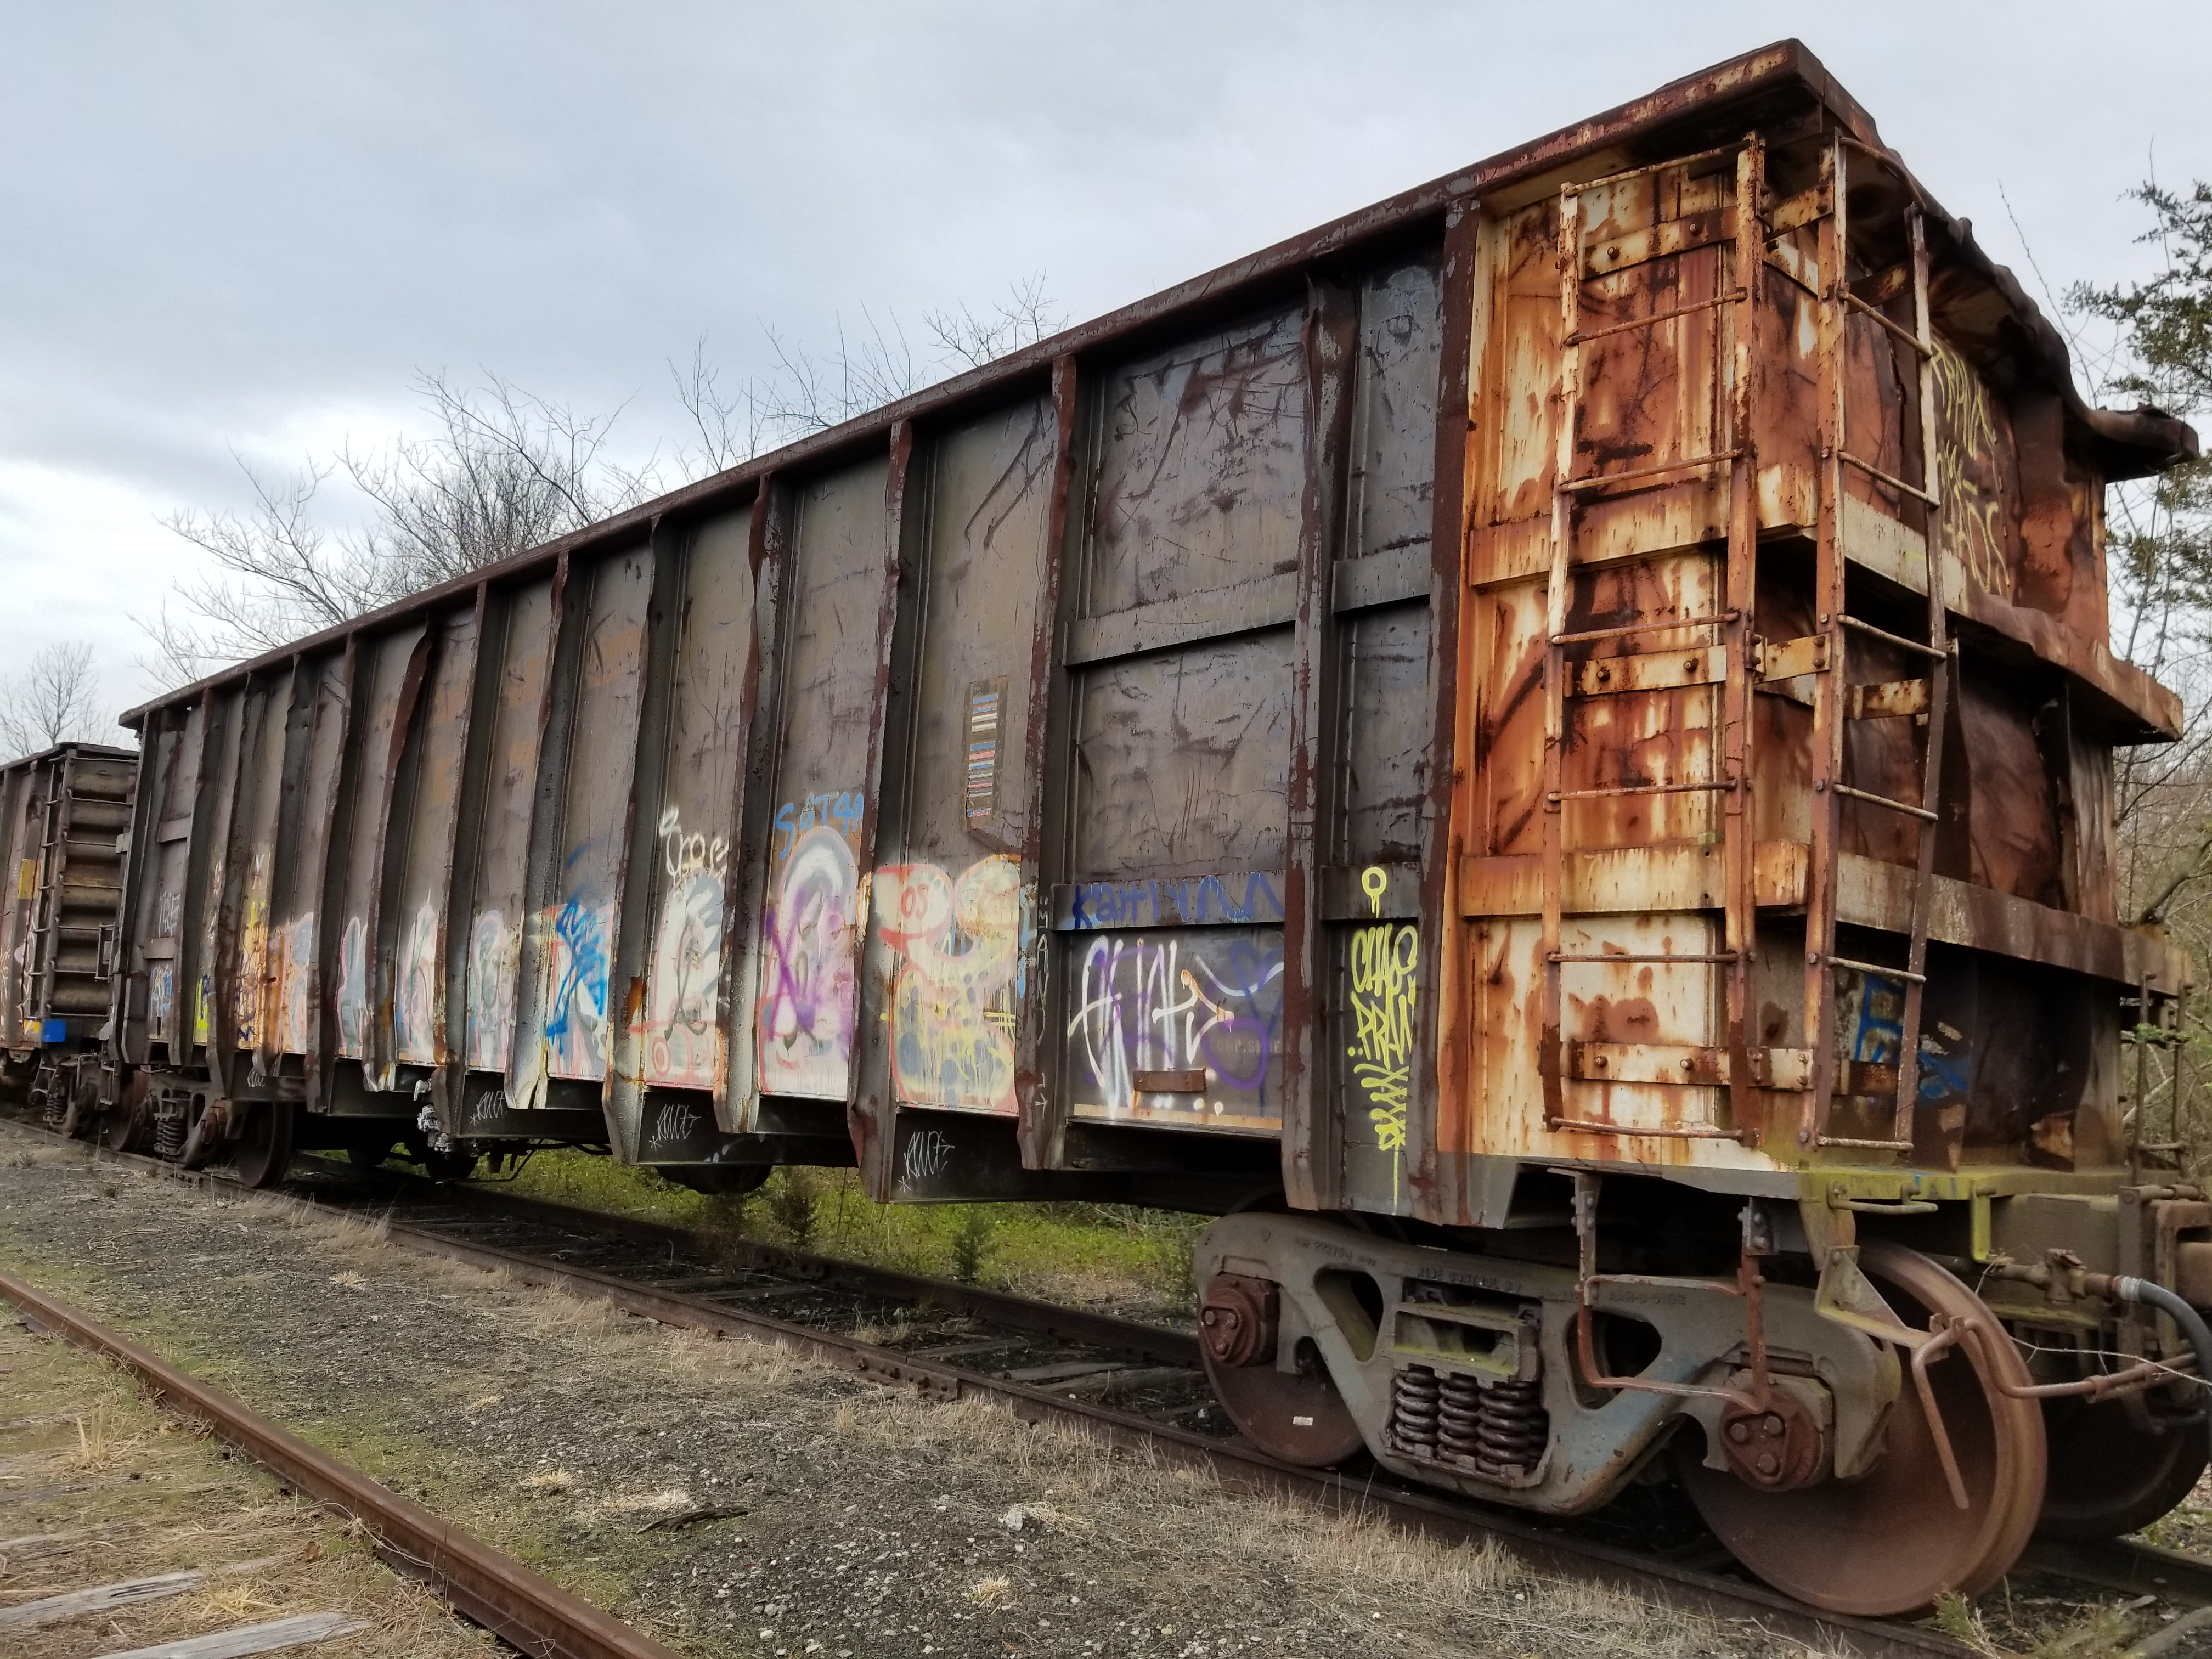 Lot 7 - LOT 7- (X 5) HIGH-SIDED GONDOLA RAIL CARS (CAPE MAY, NJ) (7-1) SRXX 4174 HIGH-SIDED GONDOLA RAIL